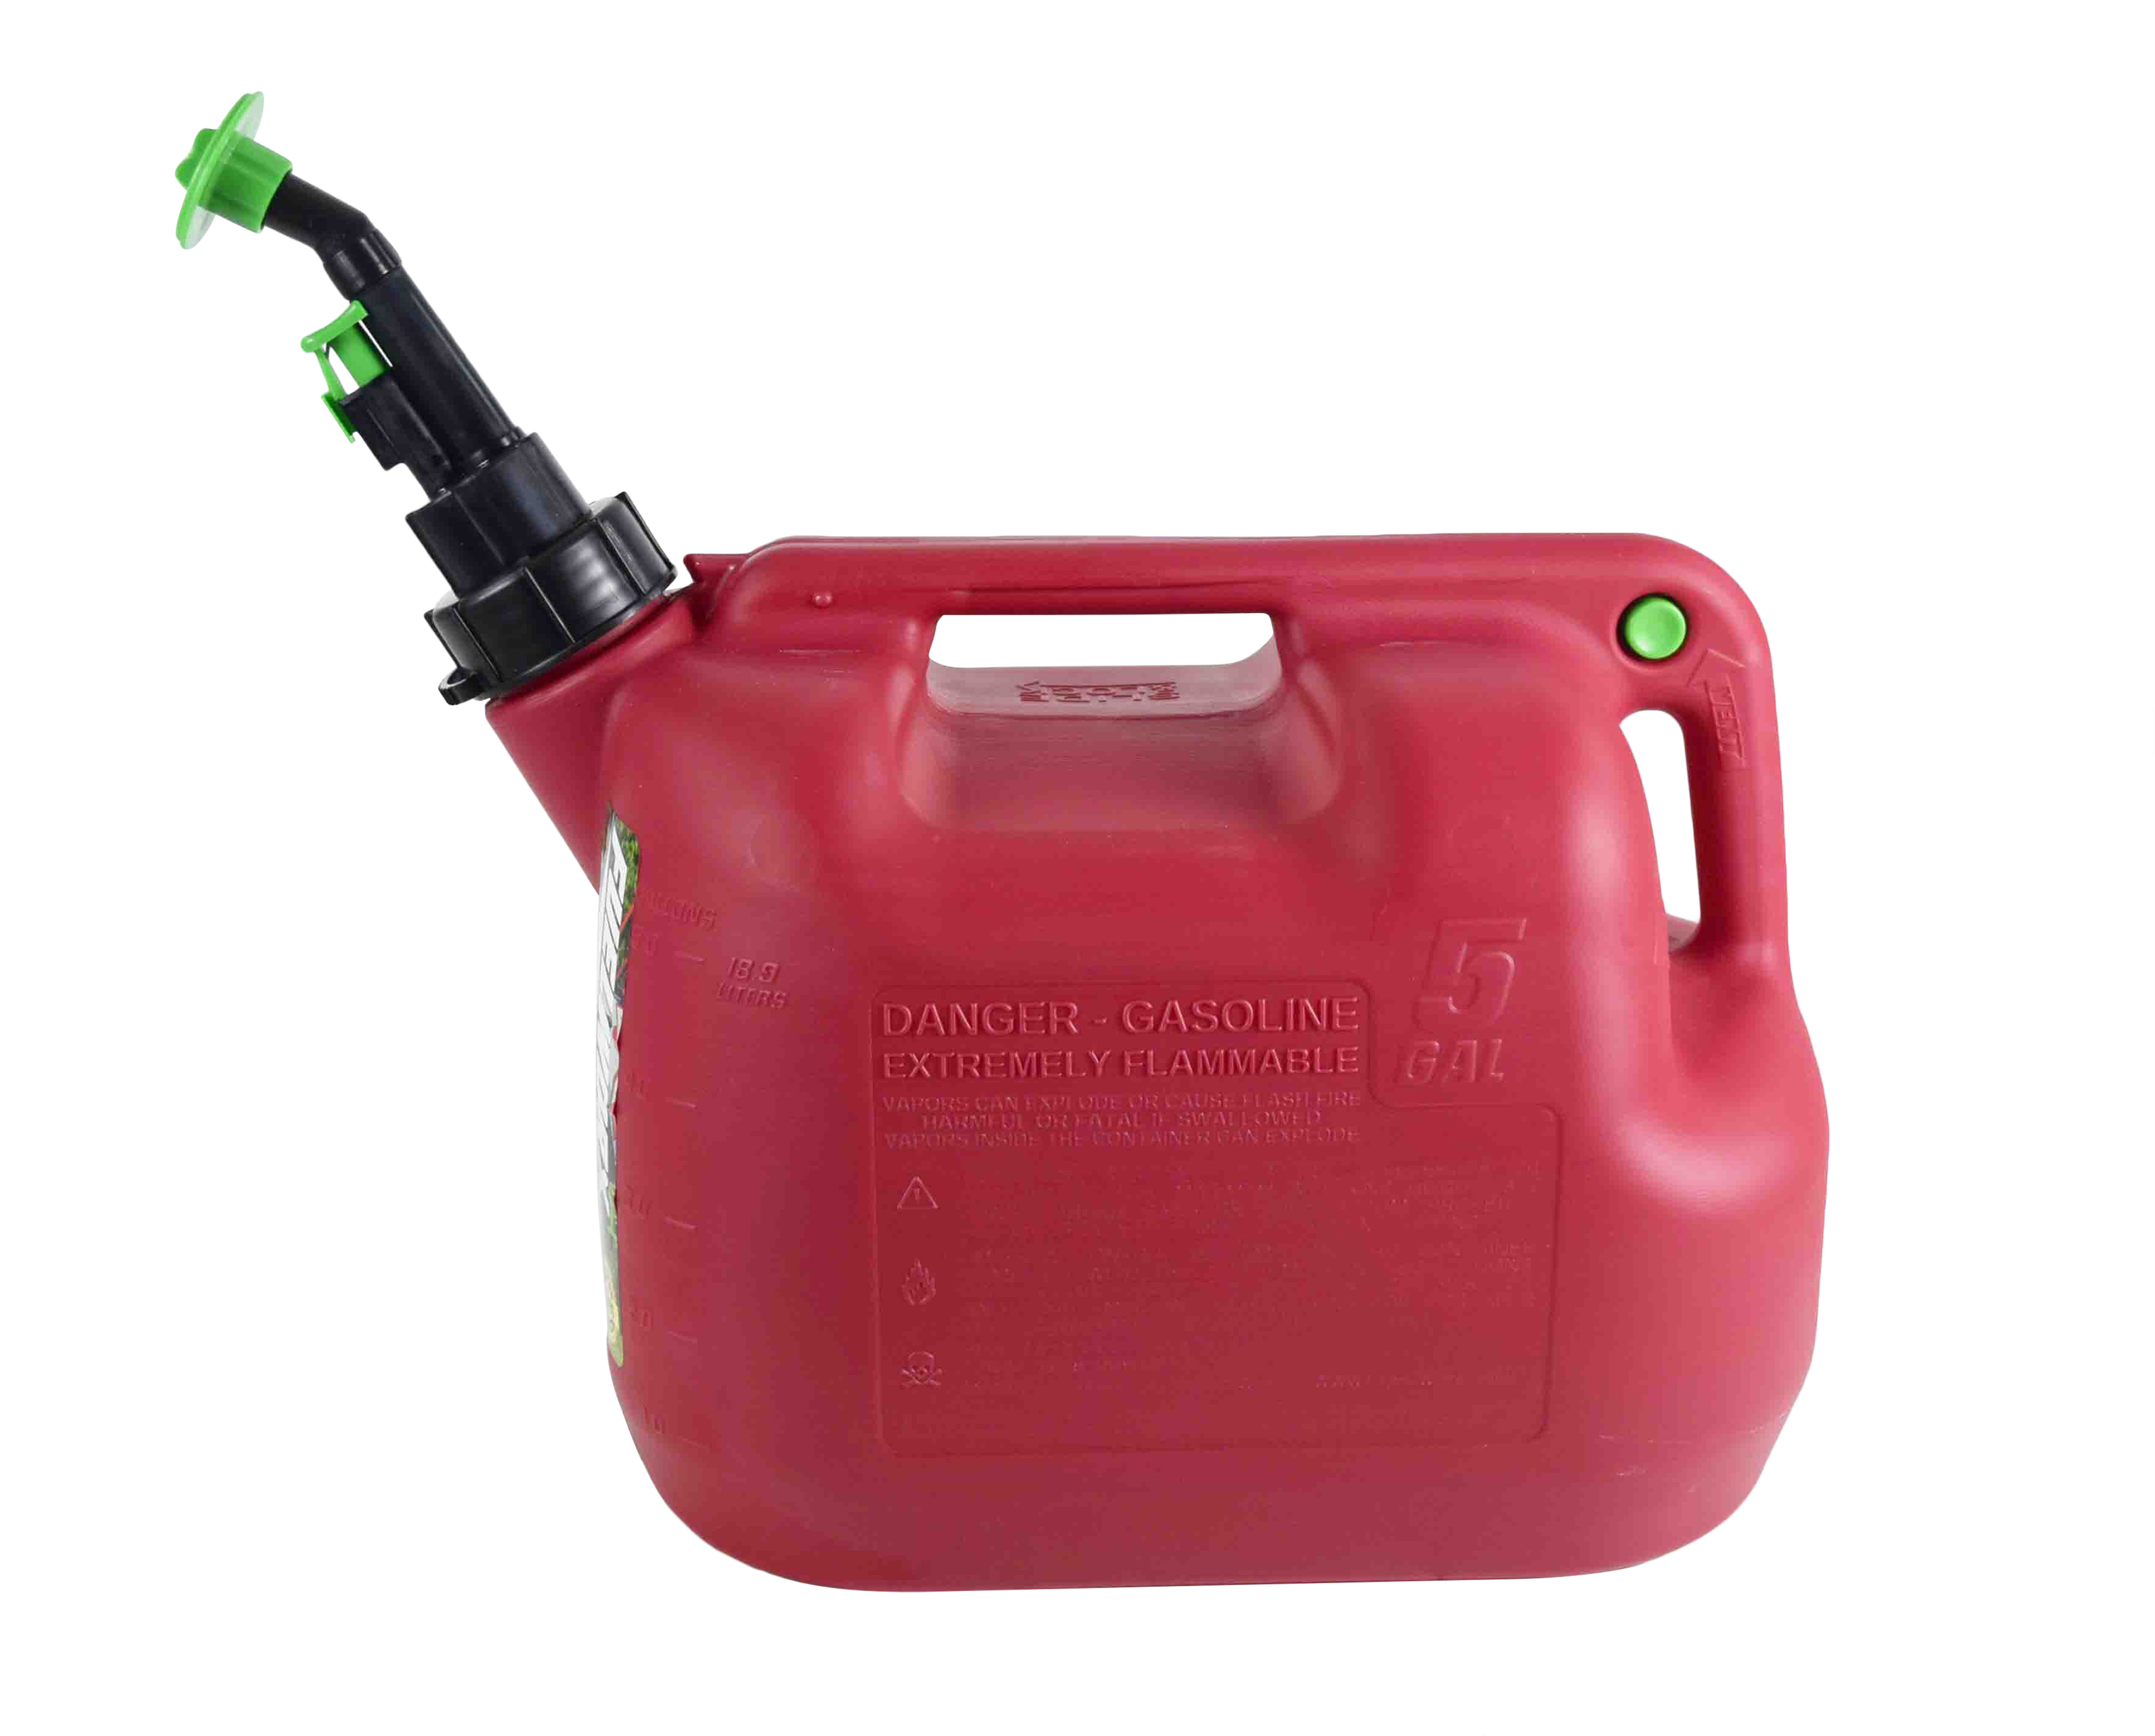 Fuelworx-Red-5-Gallon-Stackable-Fast-Pour-Gas-Fuel-Can-CARB-Compliant-Made-in-The-USA-5-Gallon-Gas-Can-Single-image-2